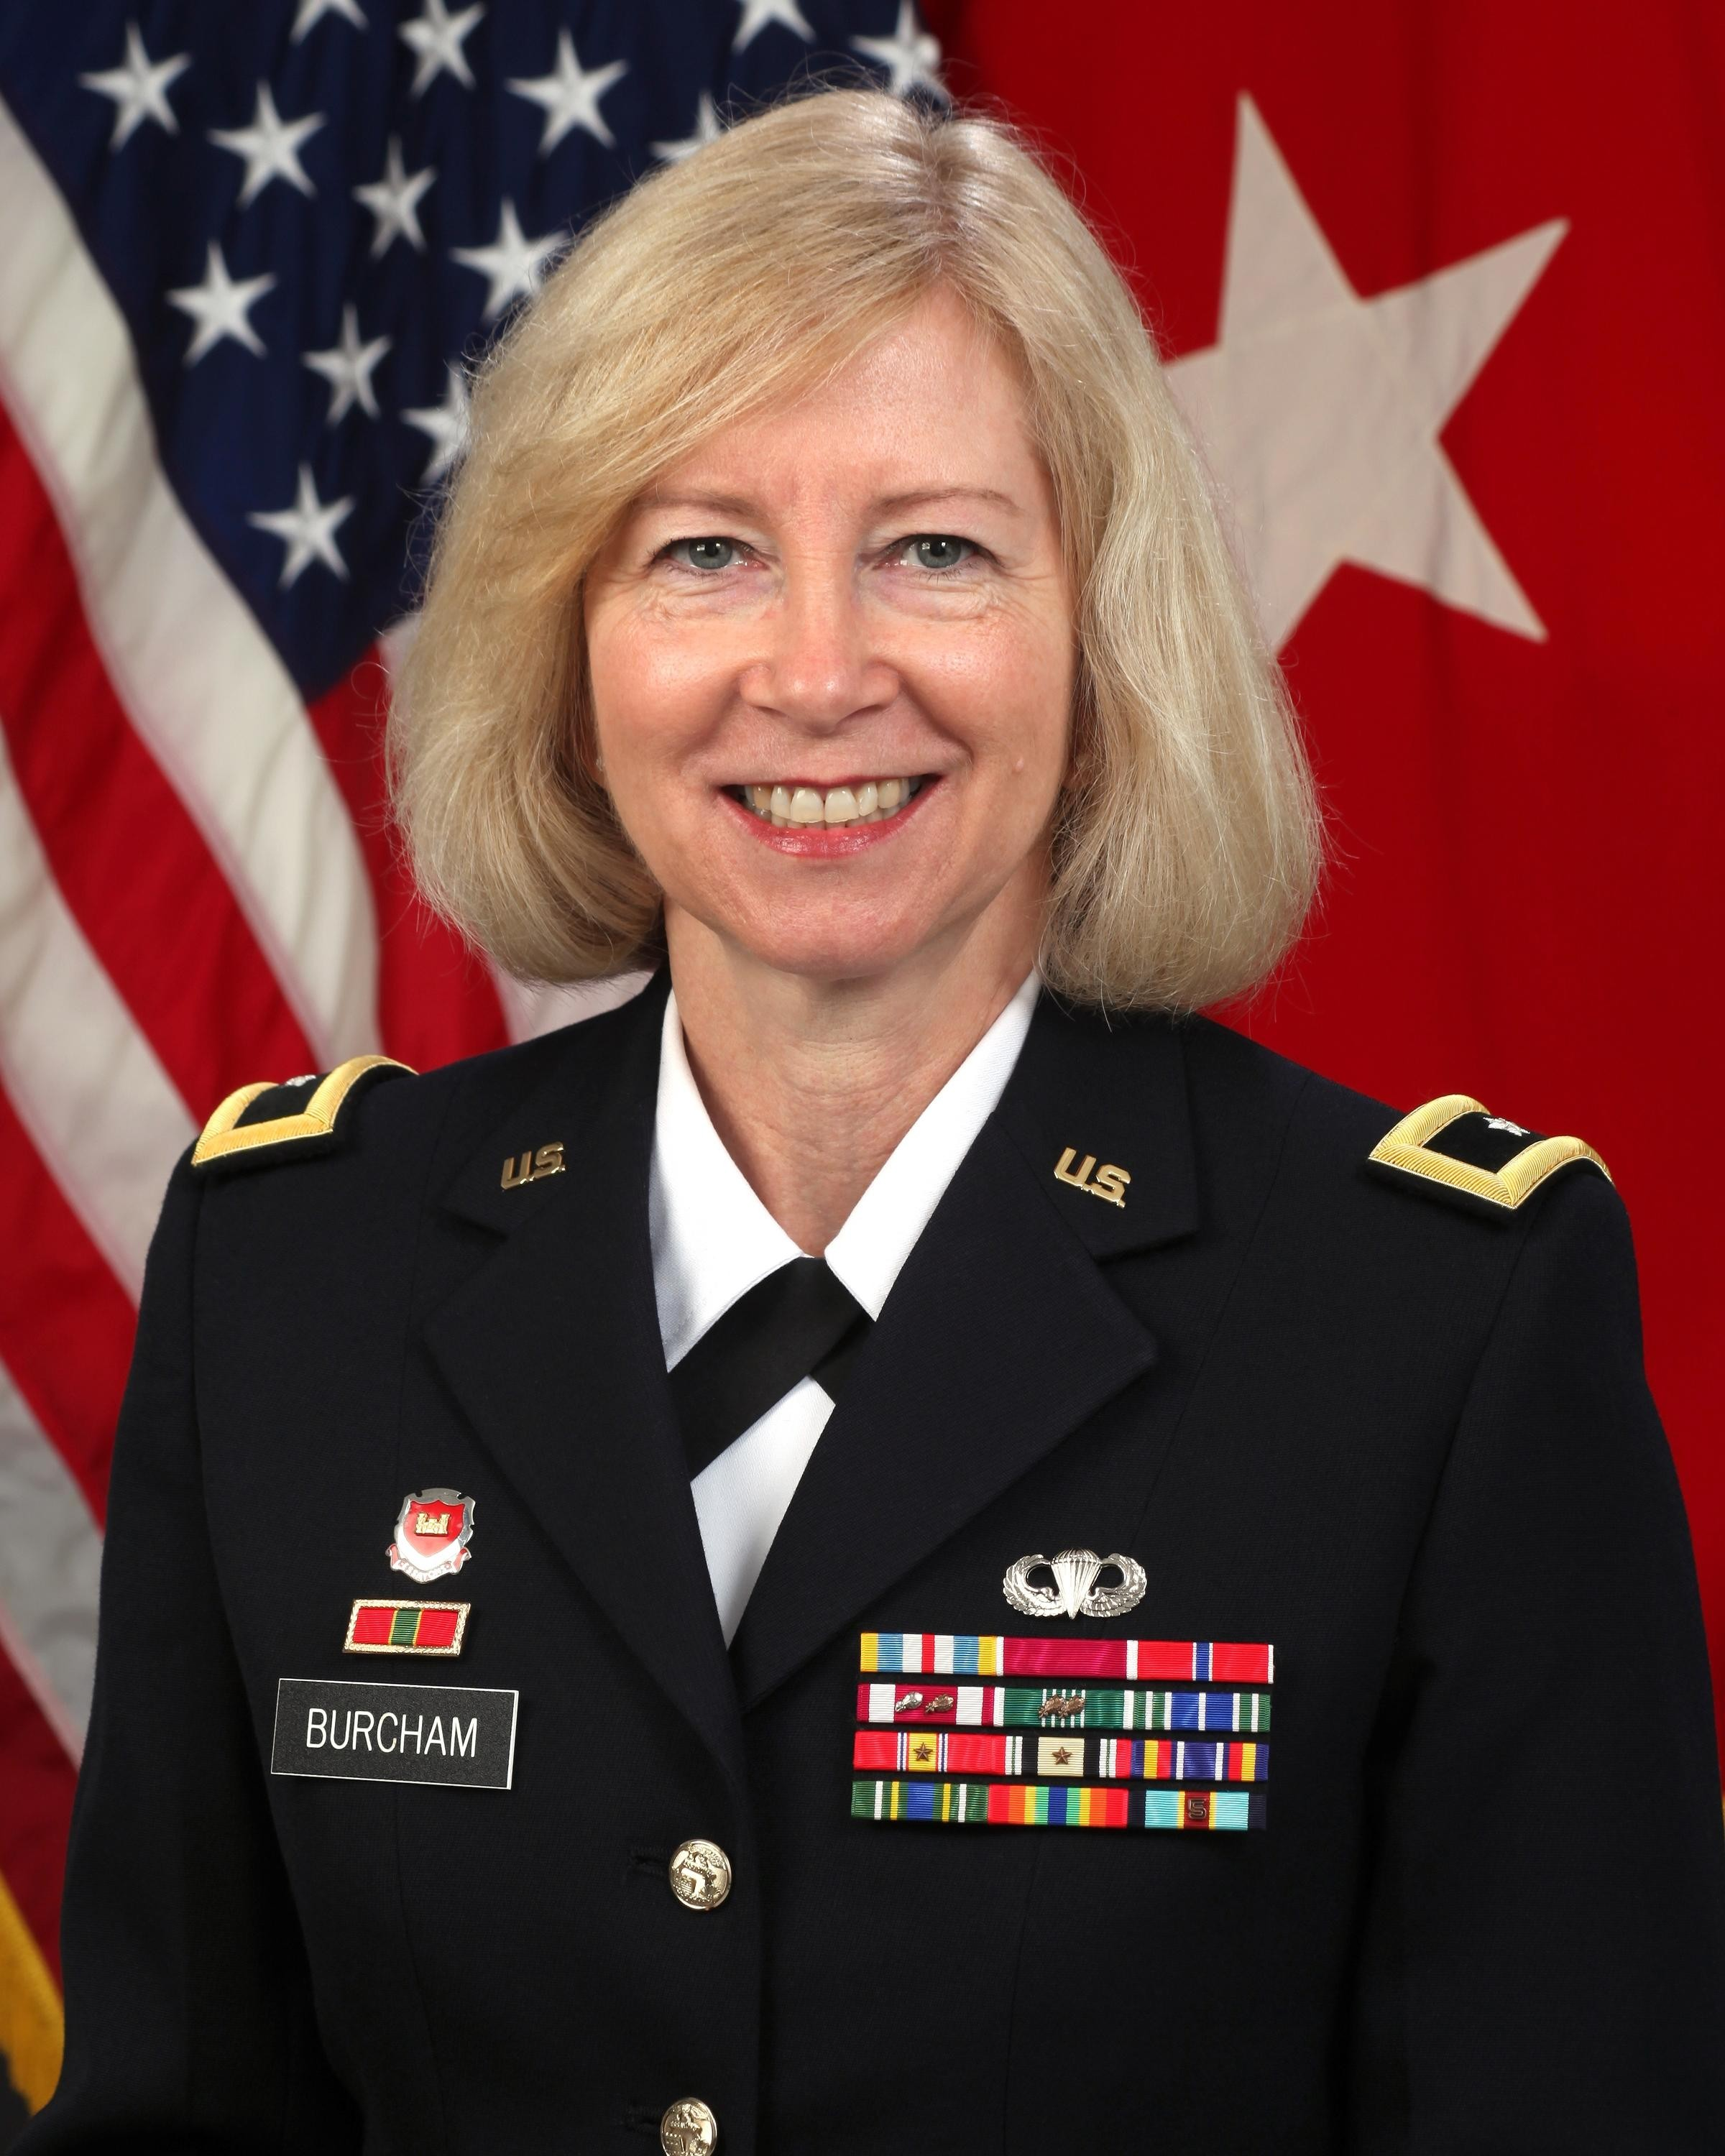 Burcham becomes first female General Officer on the Mississippi River ...